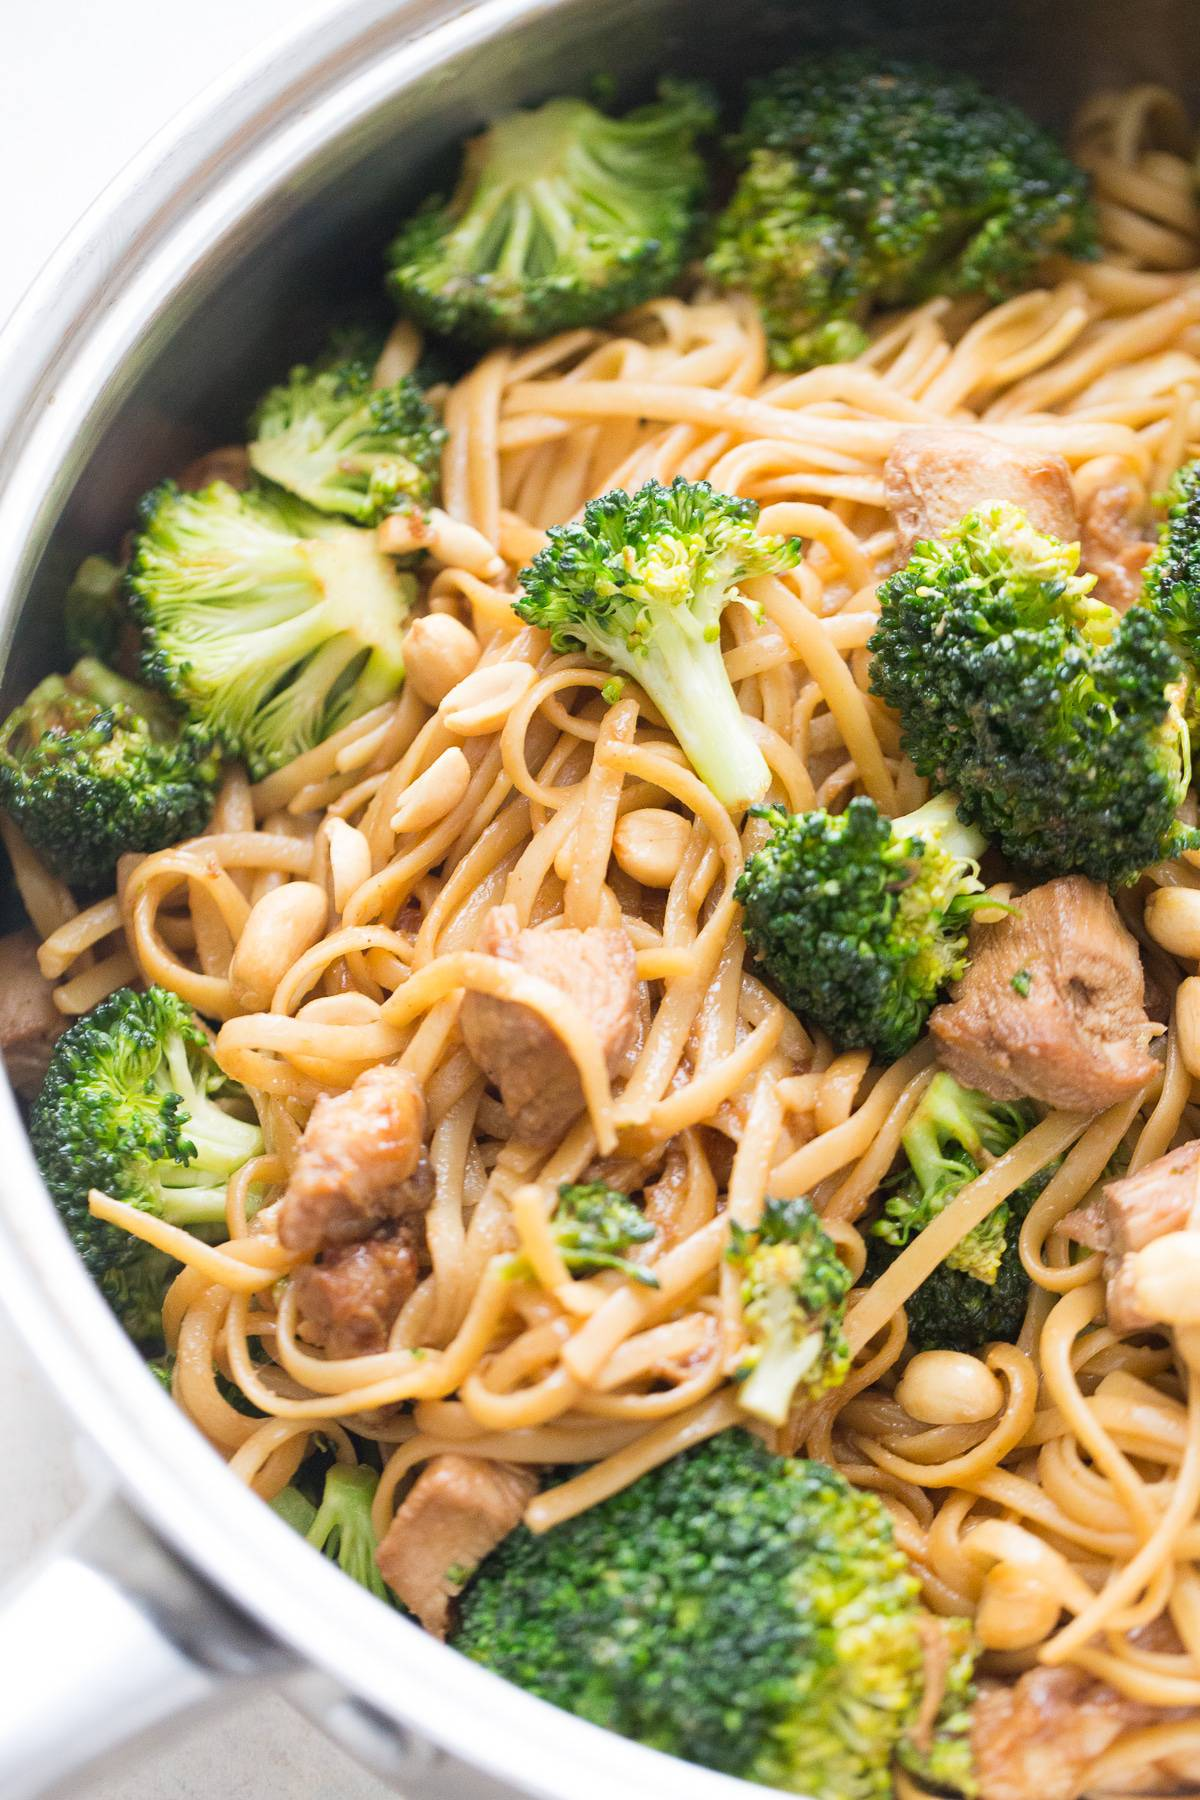 Chicken and broccoli stir fry is the perfect meal when you want to serve family something delicious but need something quick!